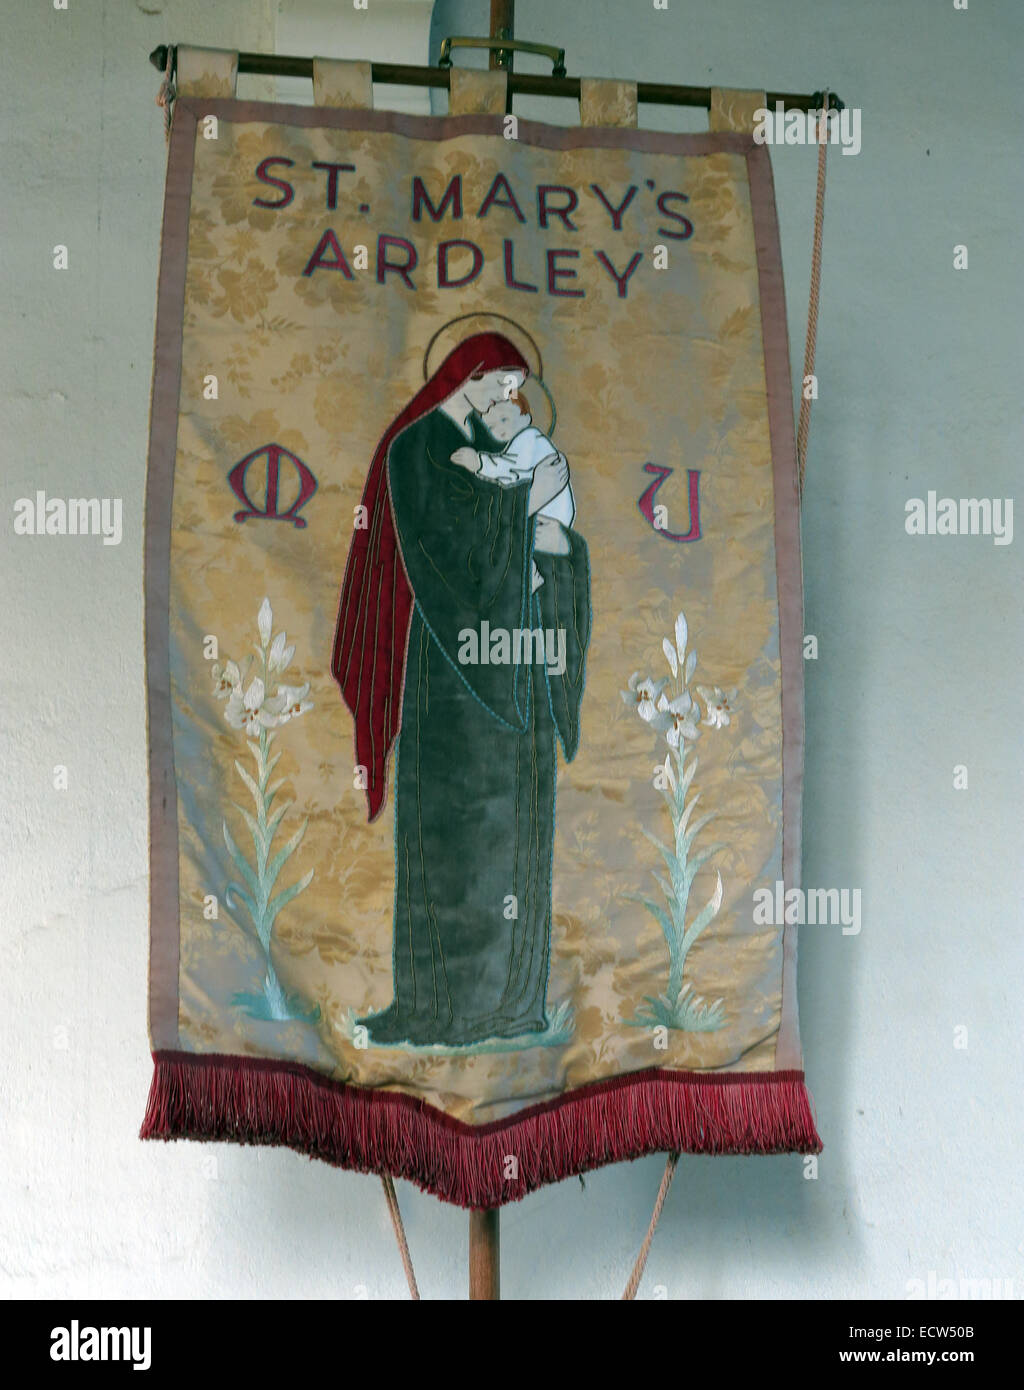 Fabric Banner from St Marys Church Ardley, Oxfordshire, England, United Kingdom - Stock Image